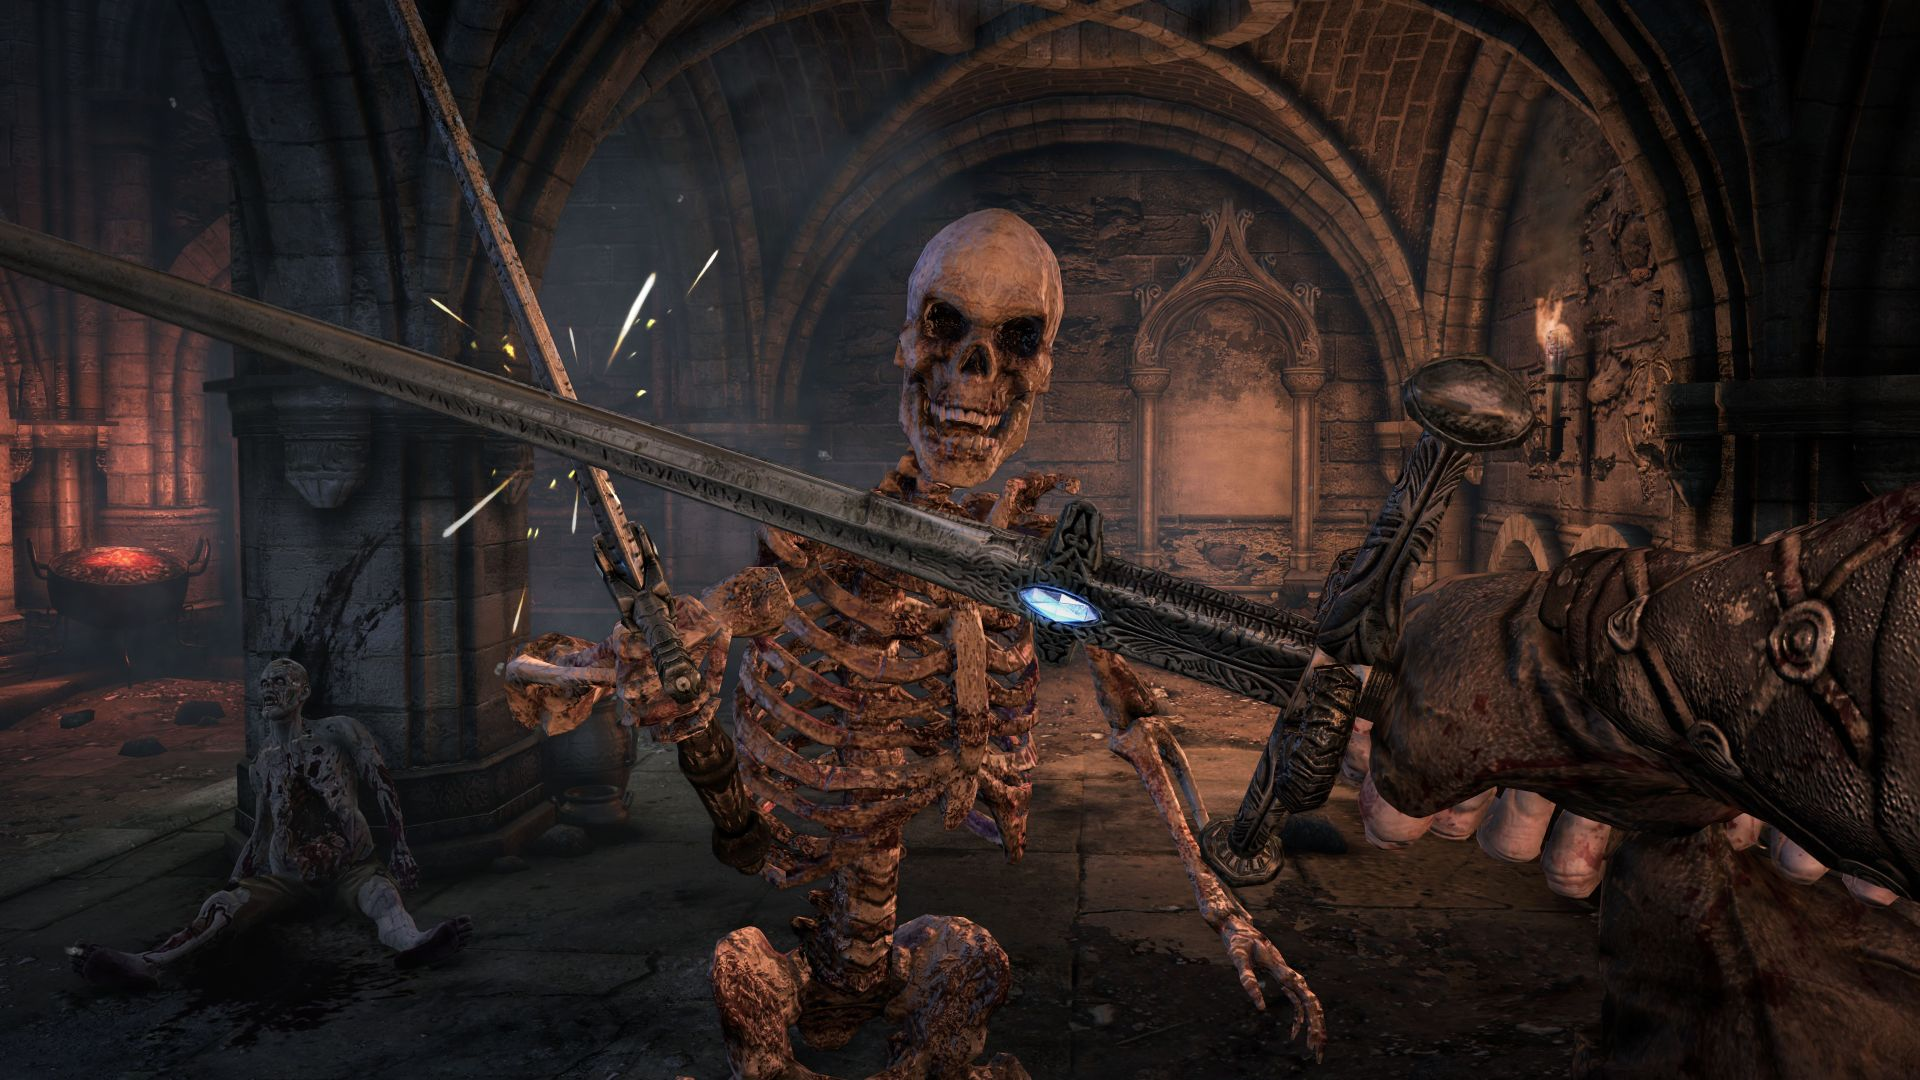 Hellraid to feature pen-and-paper-inspired system, character customization